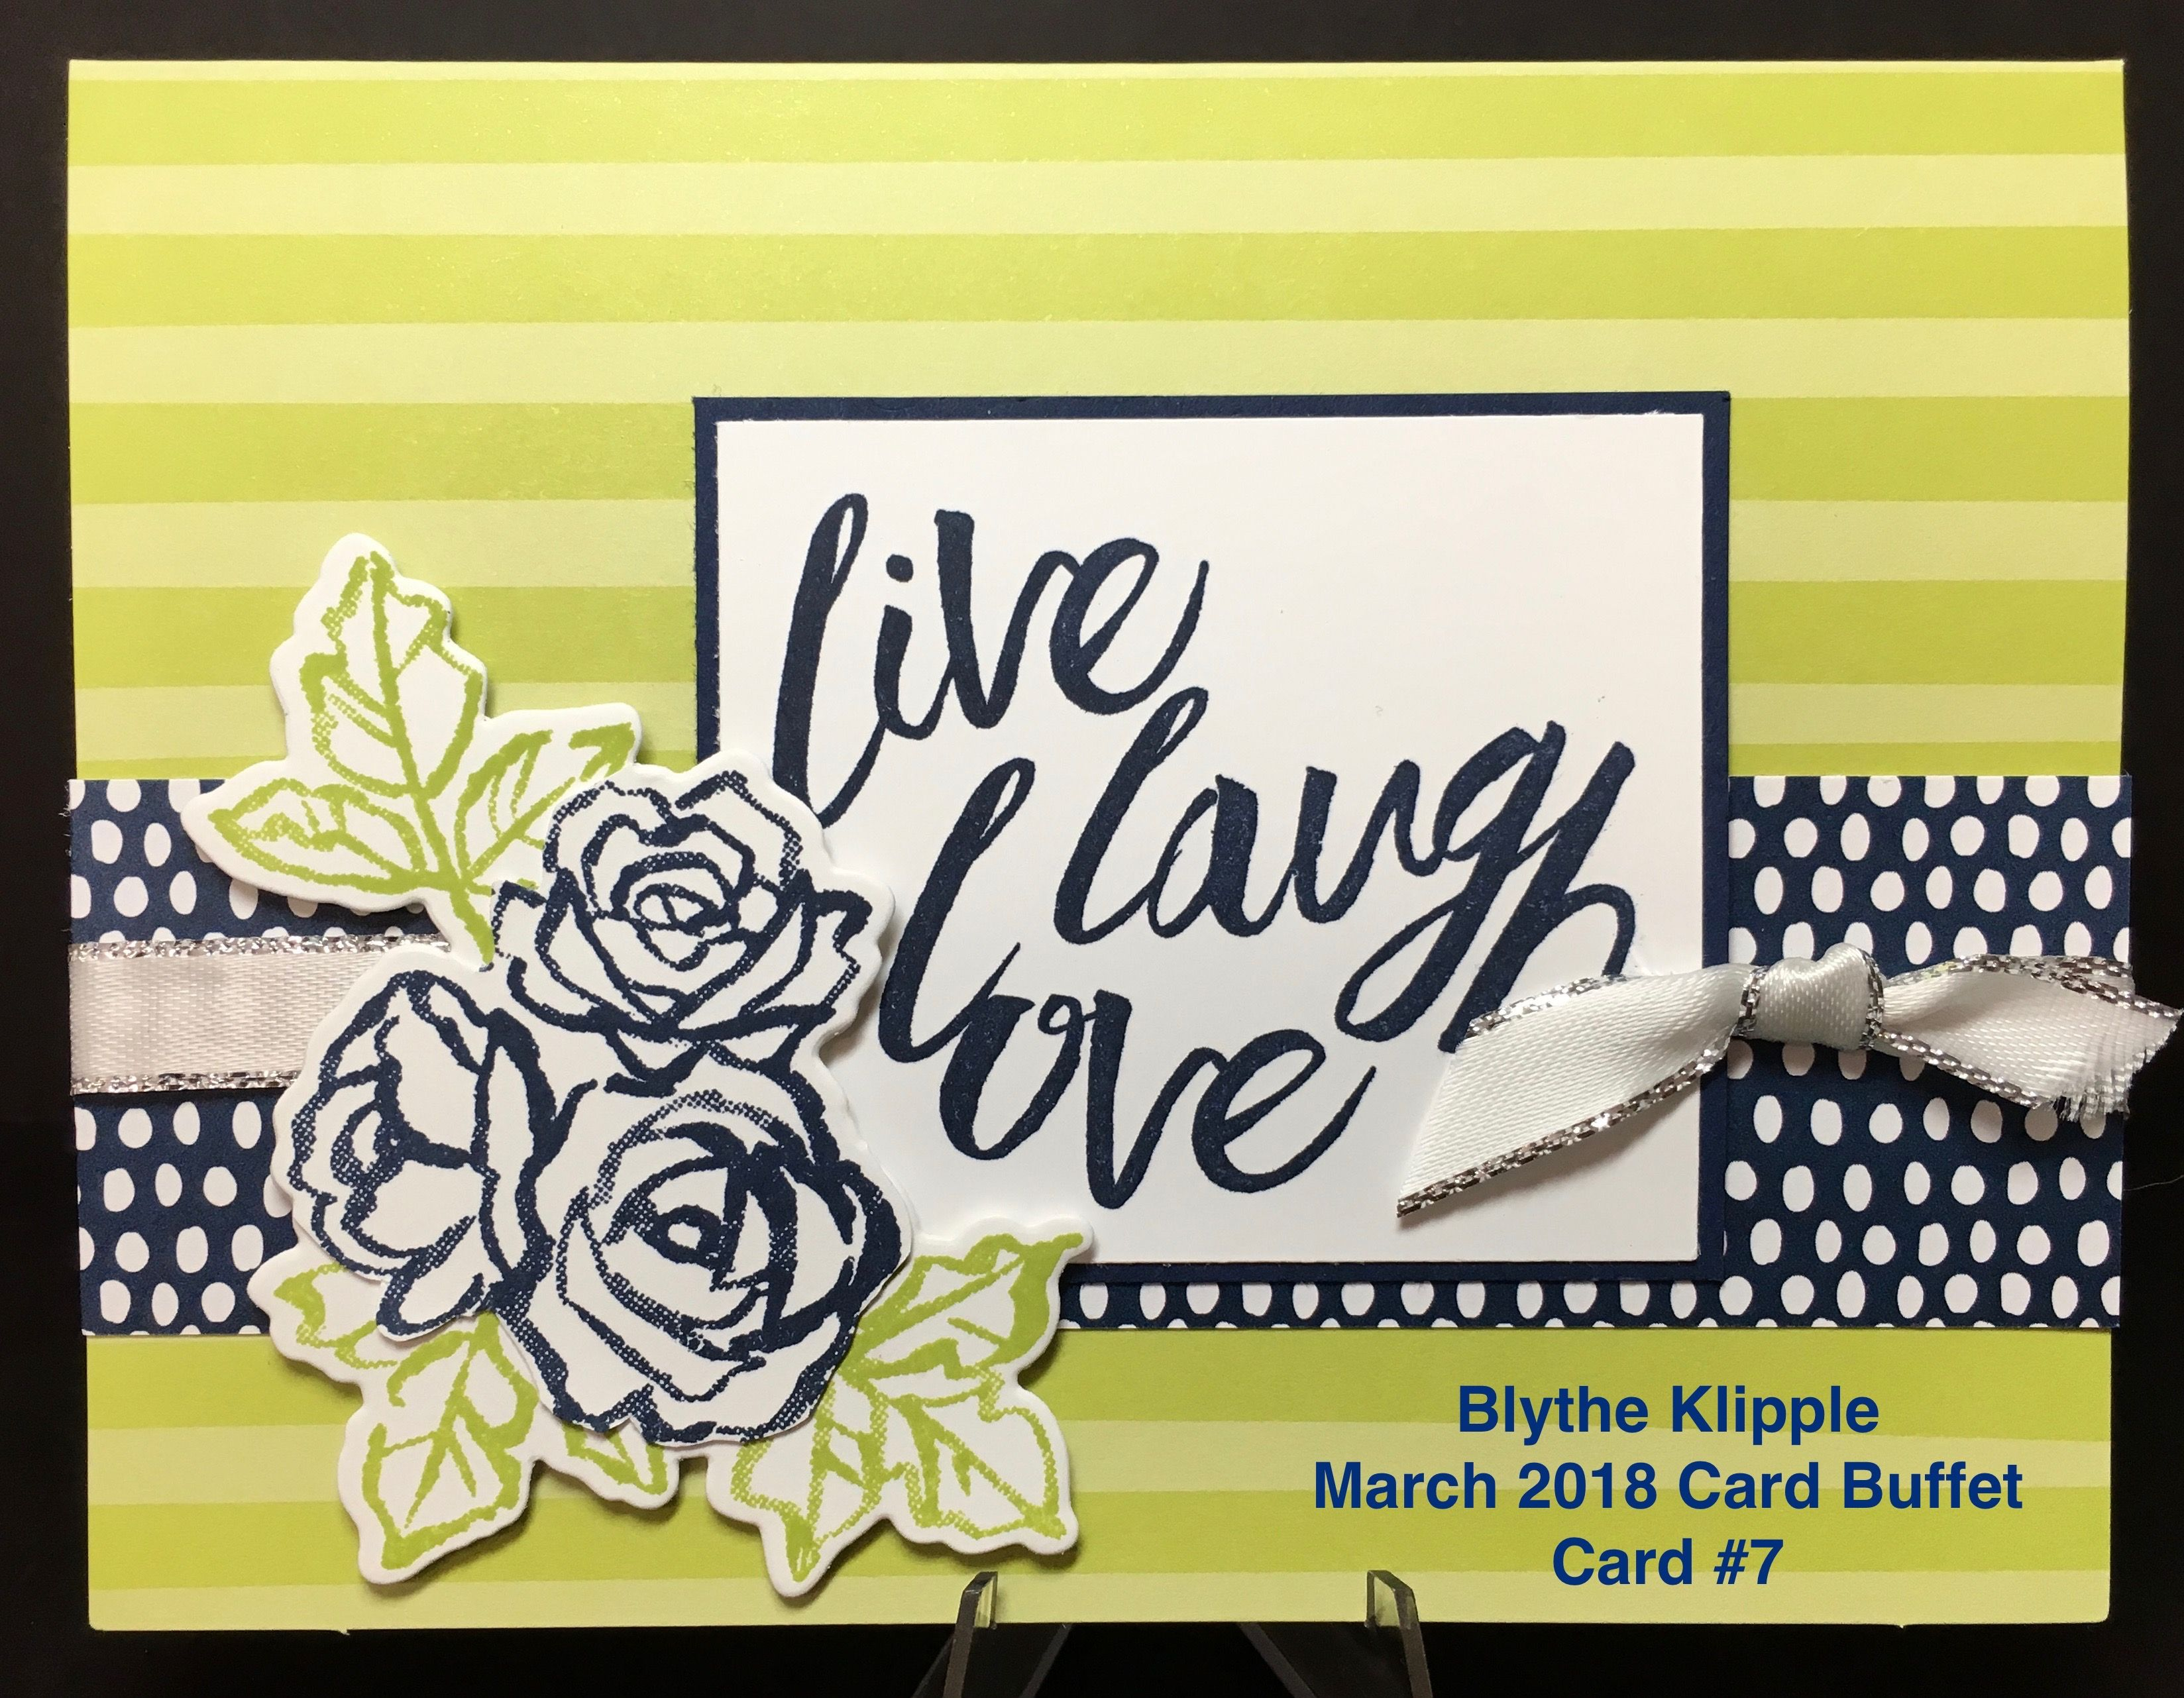 Card Making Ideas 2018 Part - 44: Blytheu0027s Card Buffet, March 2018 - Stamping With Blythe